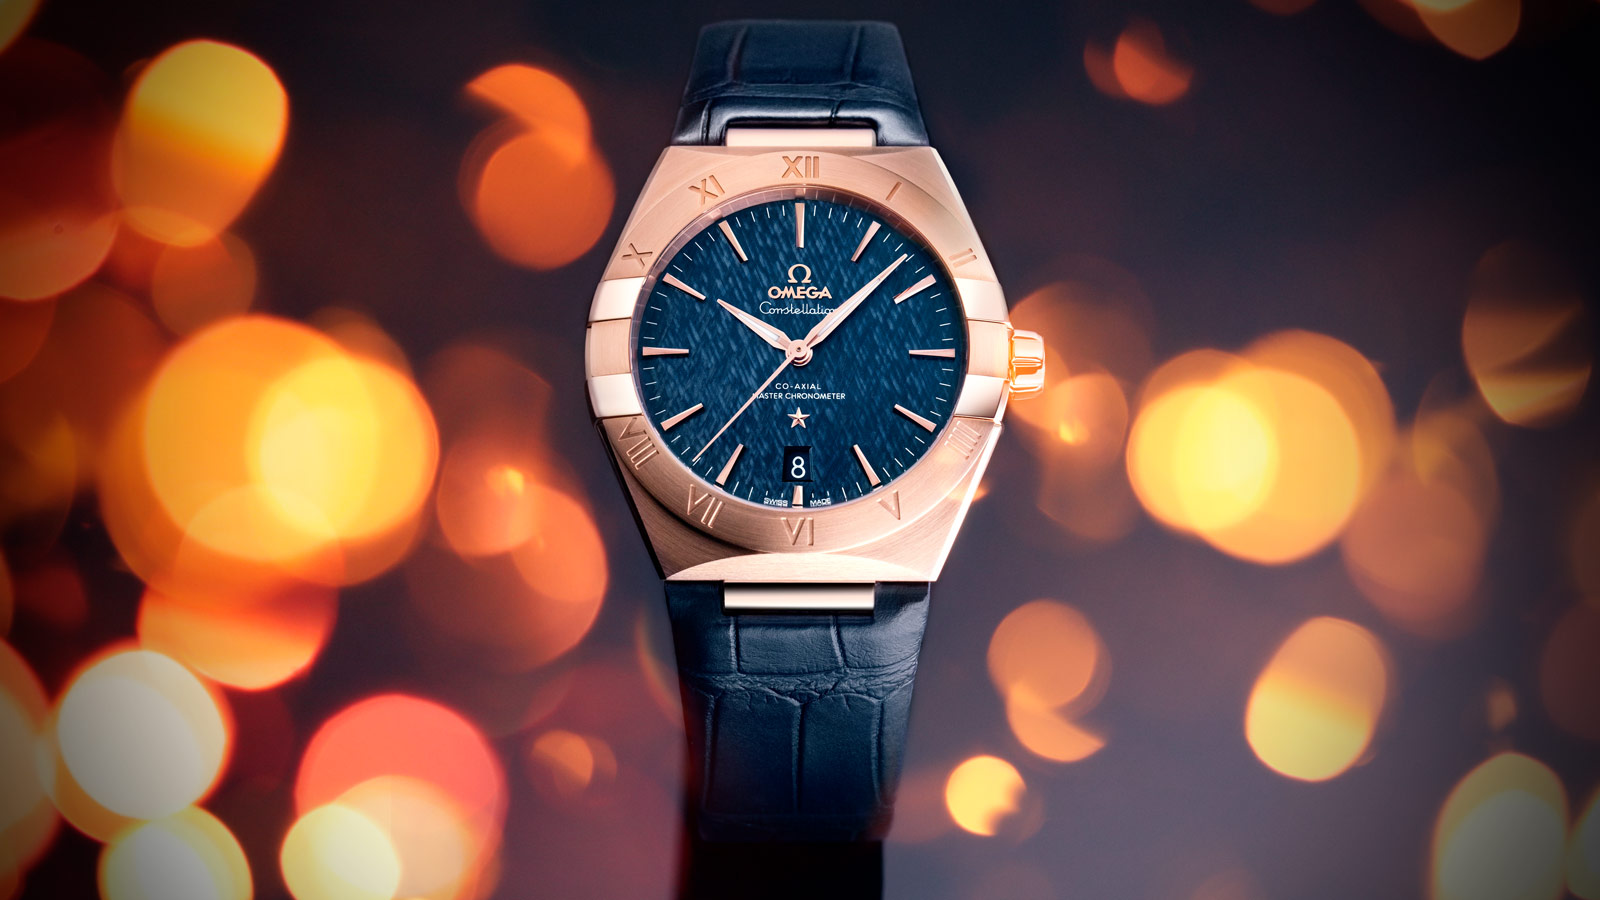 Constellation Constellation Constellation OMEGA Co‑Axial Master Chronometer 39 mm Watch - 131.53.39.20.03.001